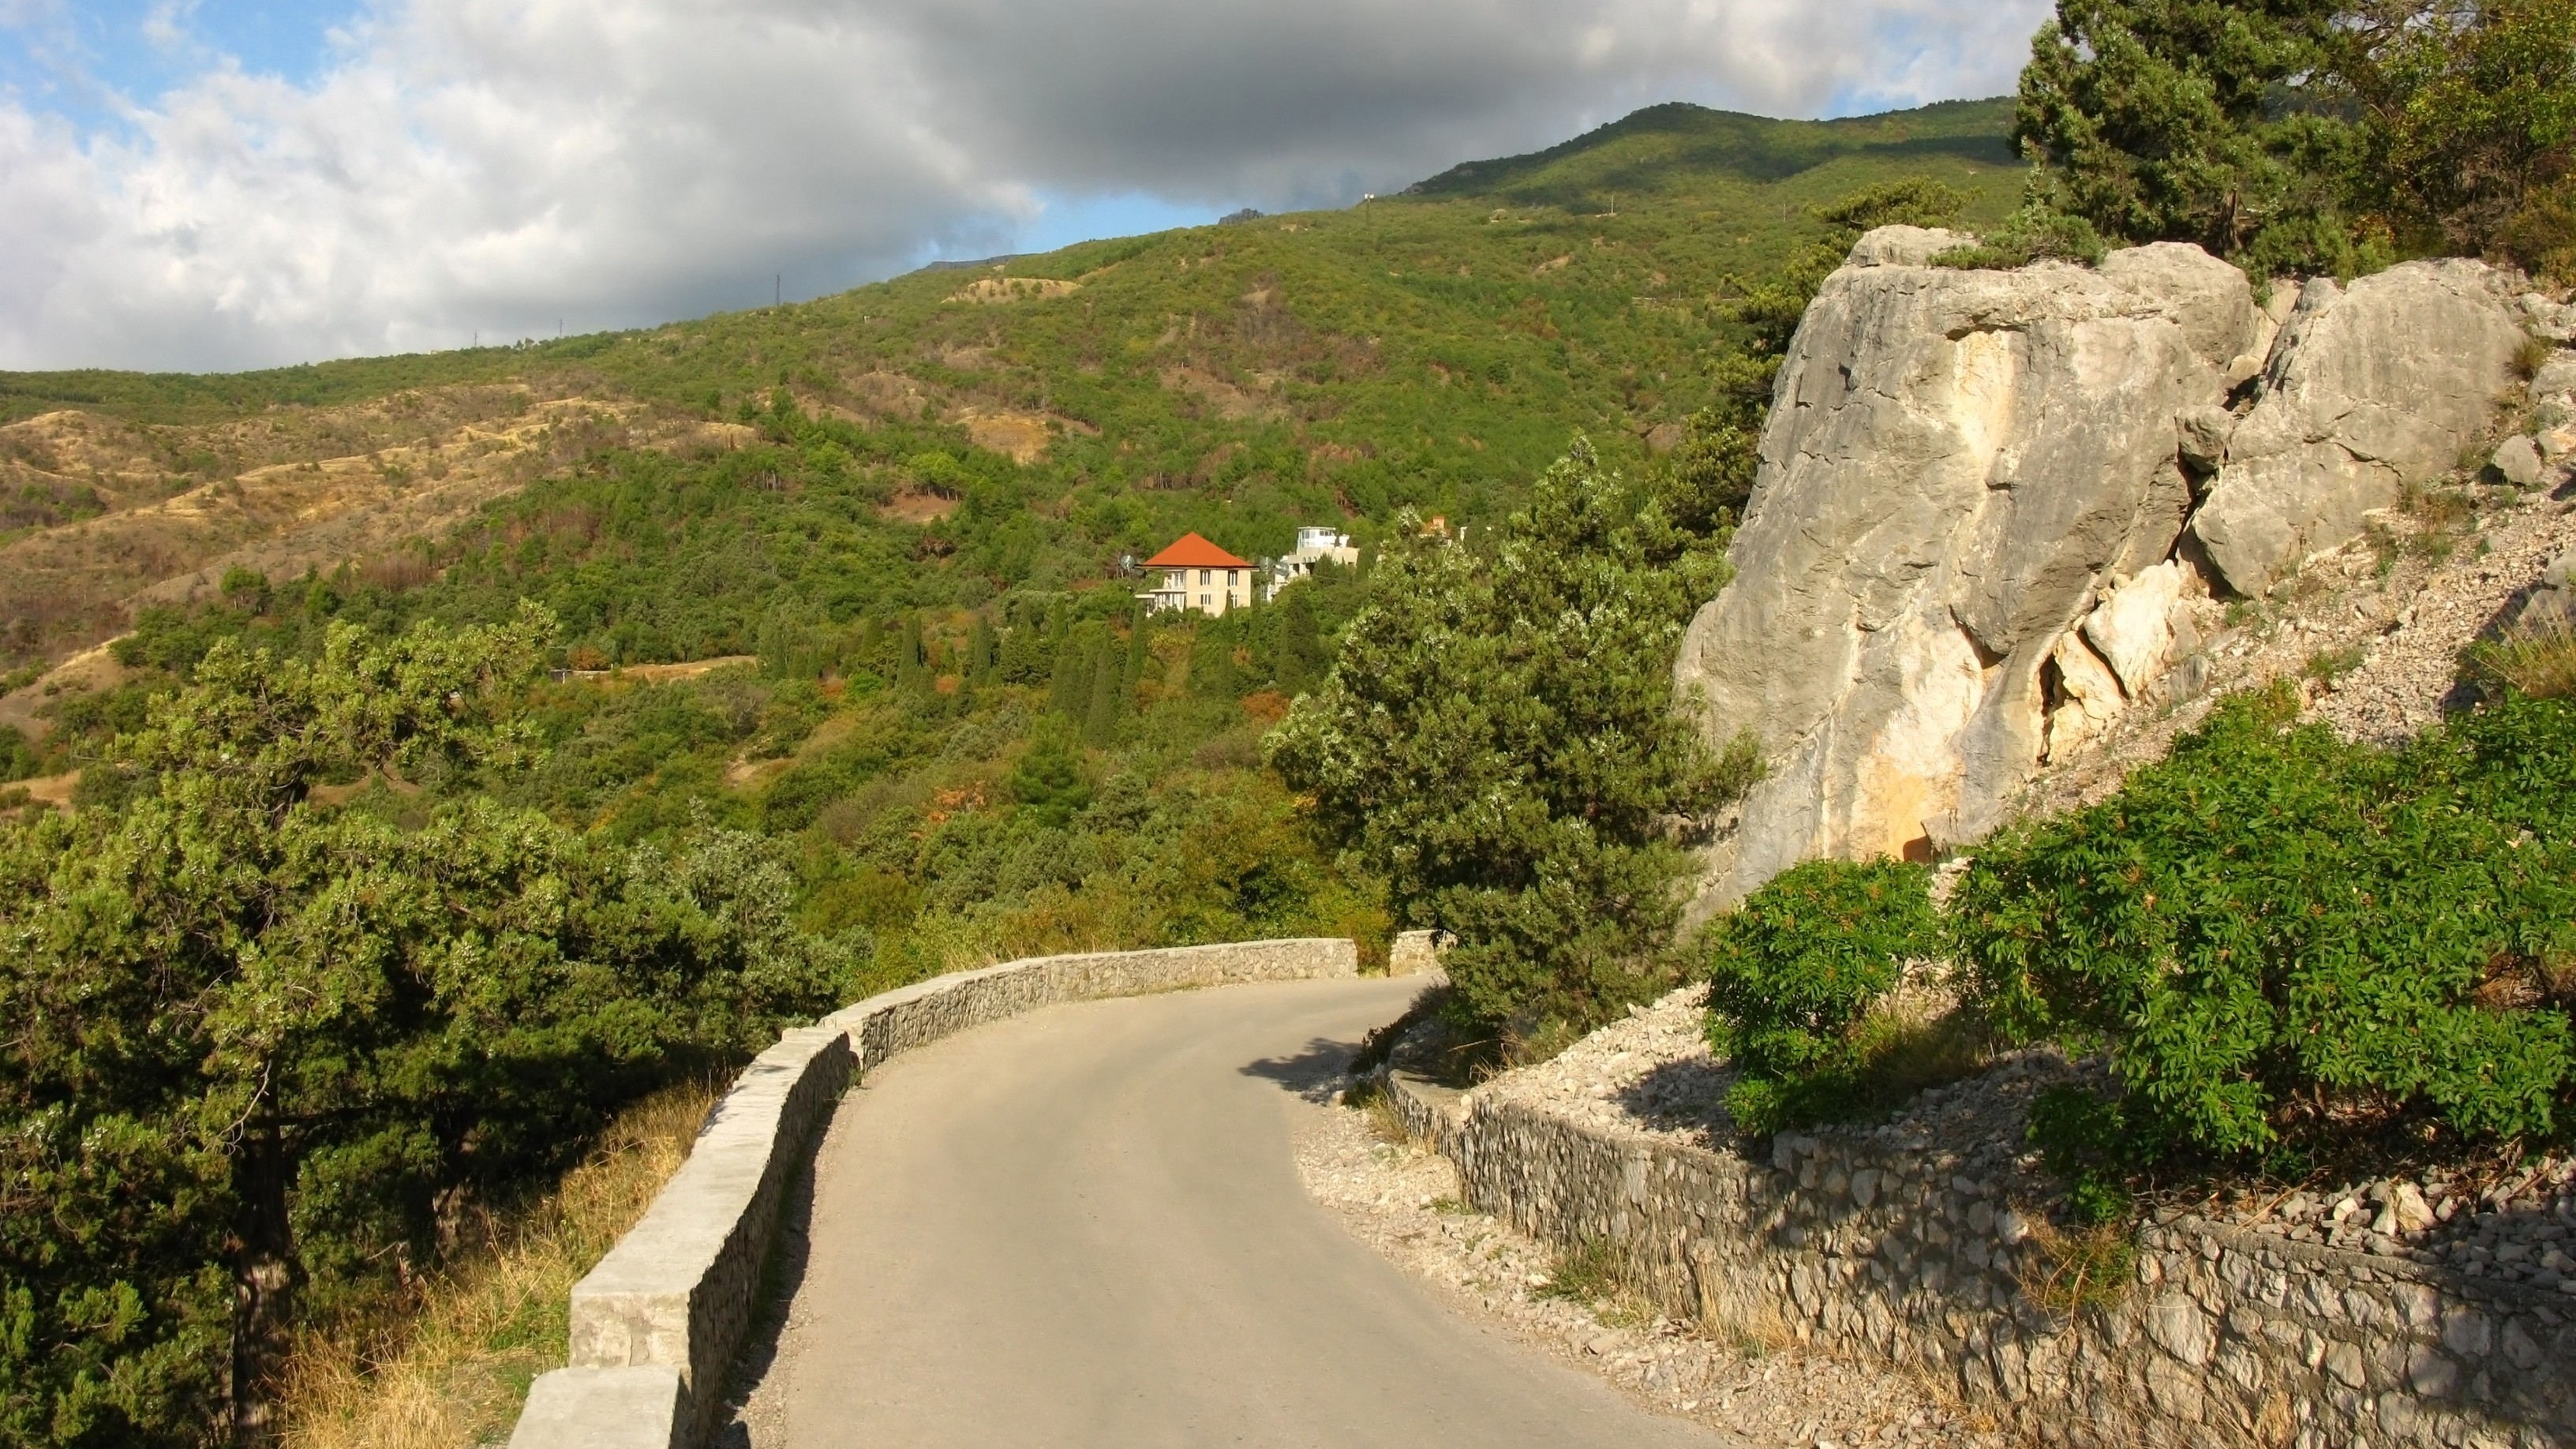 Mountainous landscape with serpentinous road.